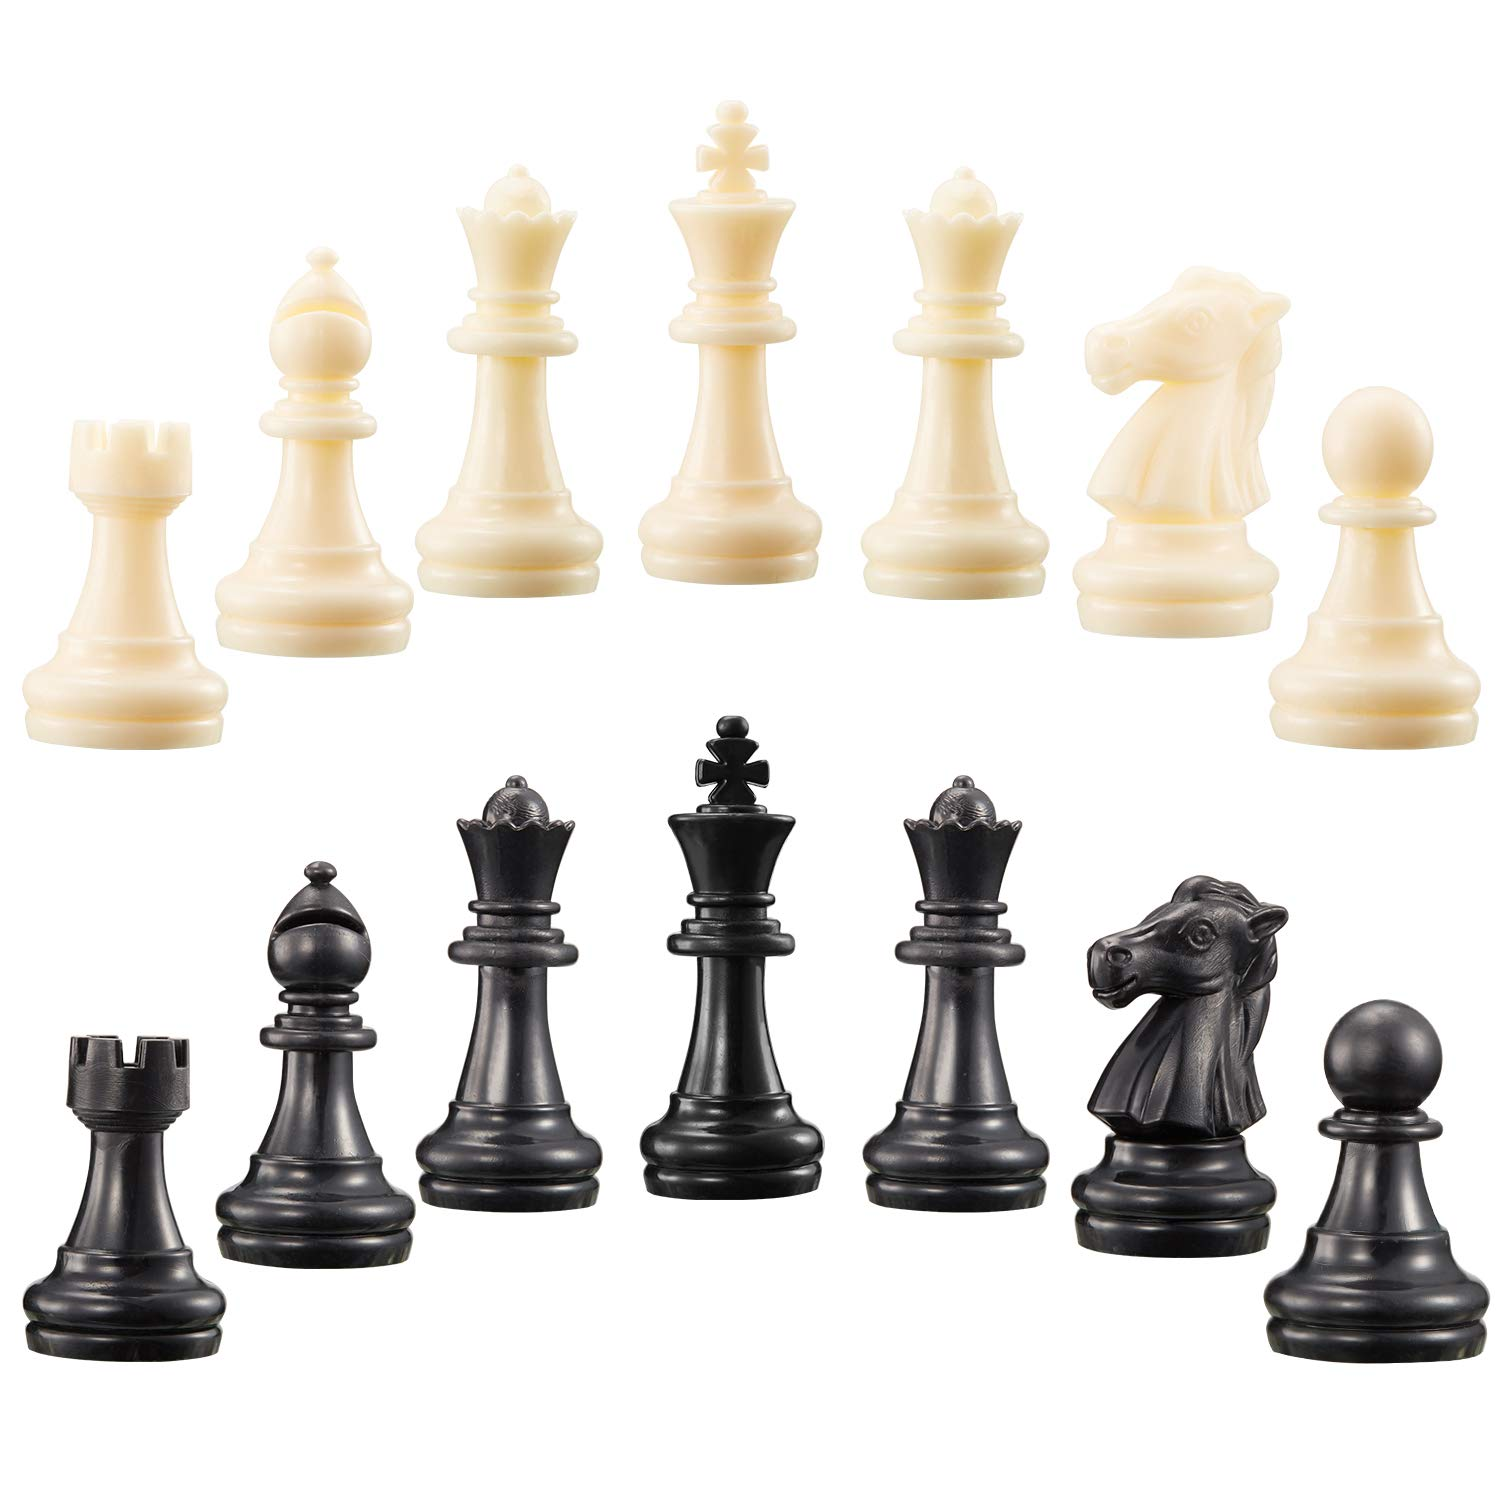 2 Sets Chess Pieces Chess Pawns Tournament Chess Set For Chess Board Game Pieces Only And No Board White And Black